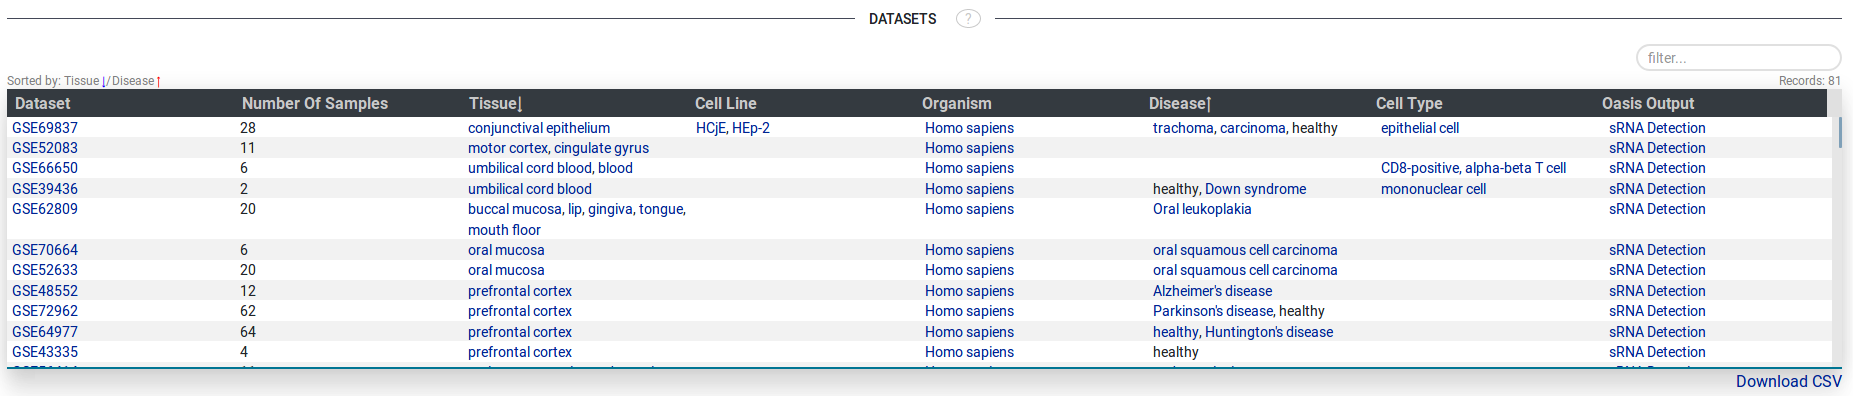 Datasets Overview